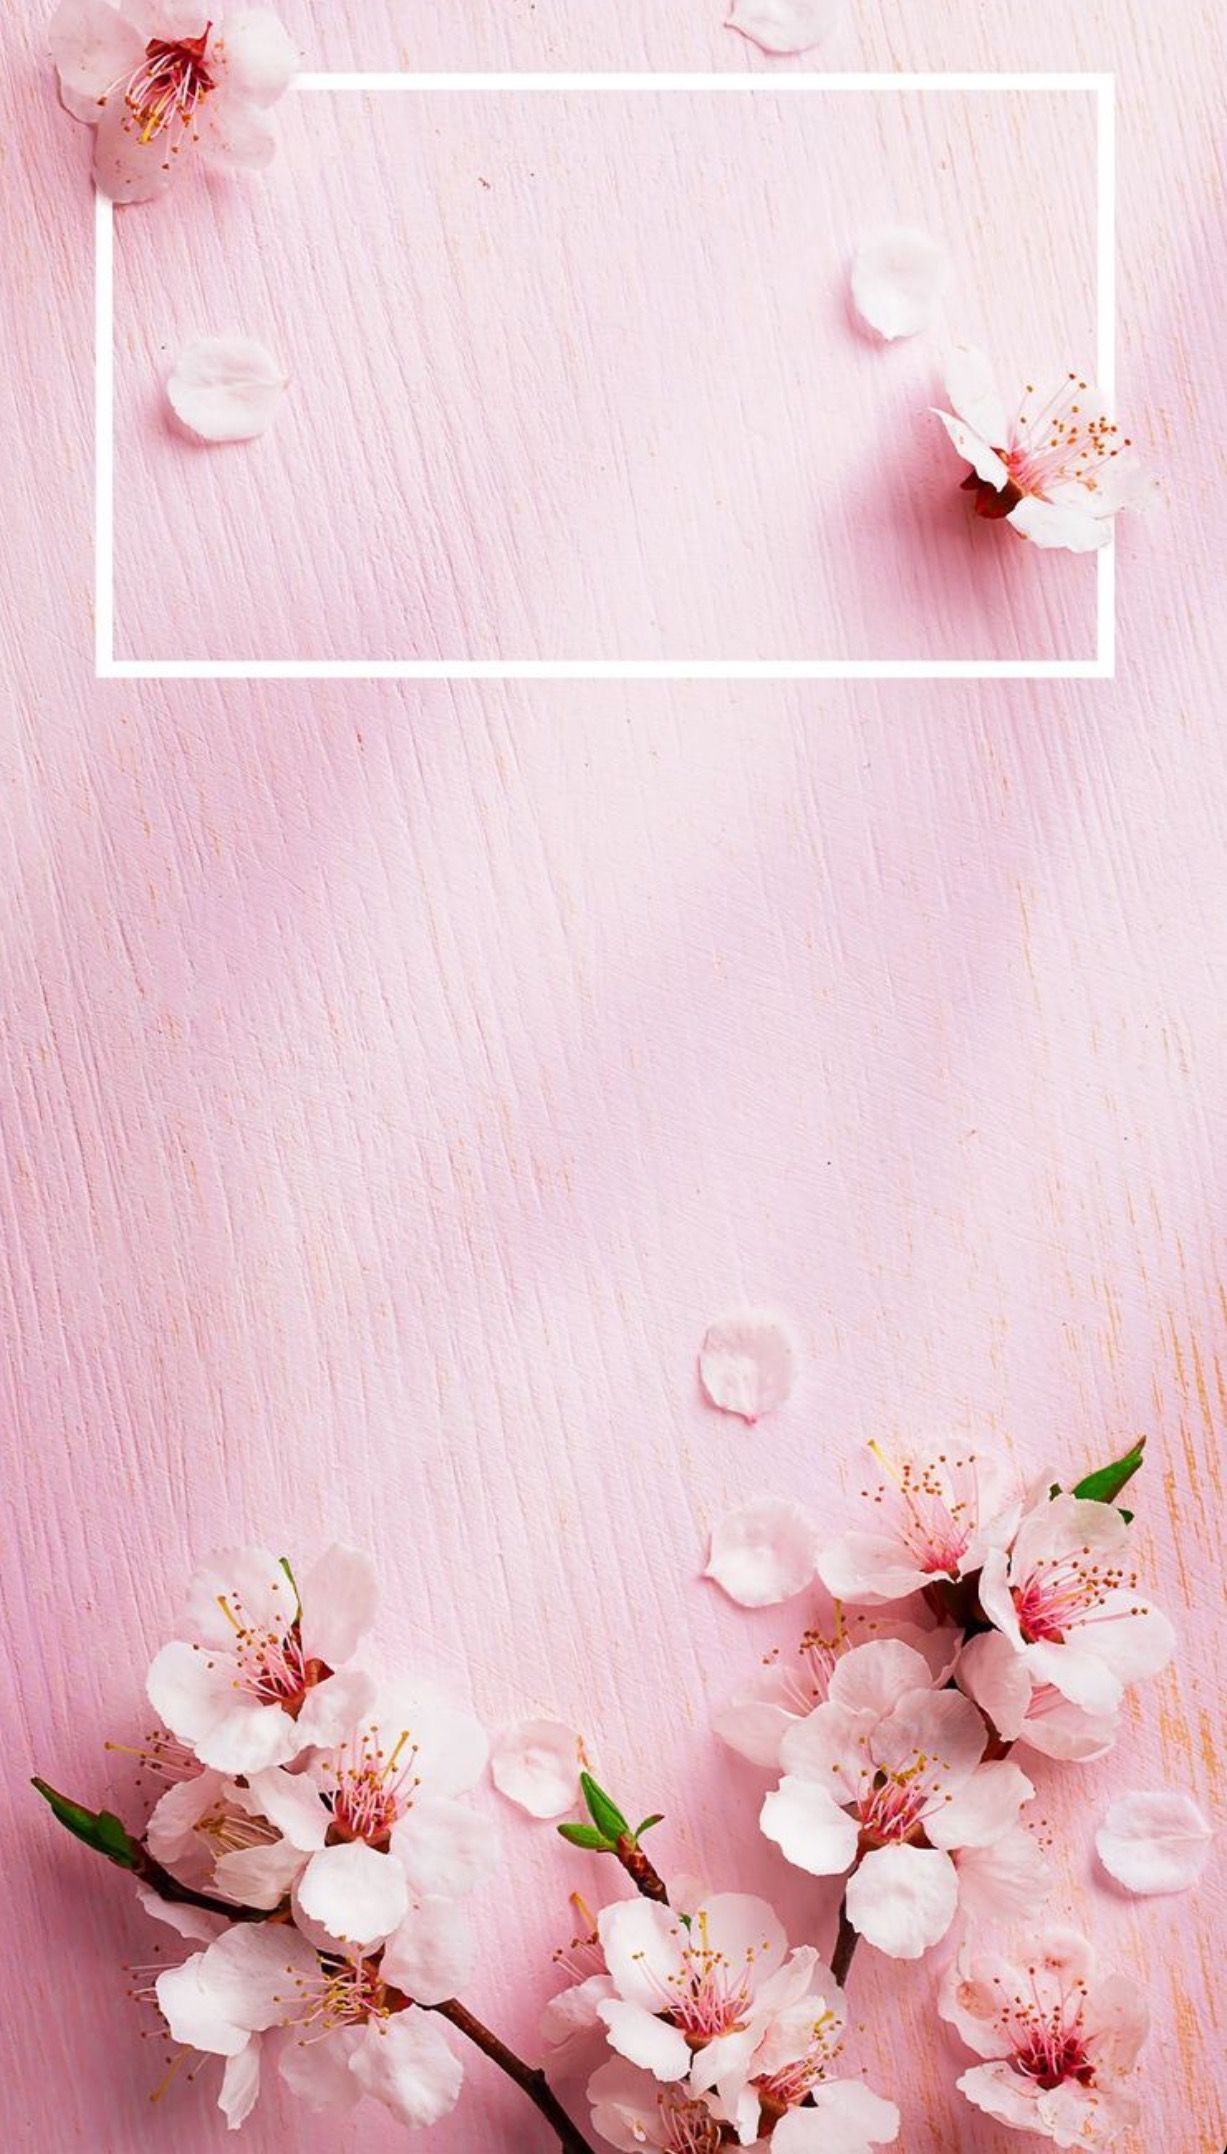 Pin By Ralica Todeva On Wallpaper Iphone Iphone Spring Wallpaper Spring Wallpaper Rose Gold Wallpaper Coolest wallpaper flower with quotes